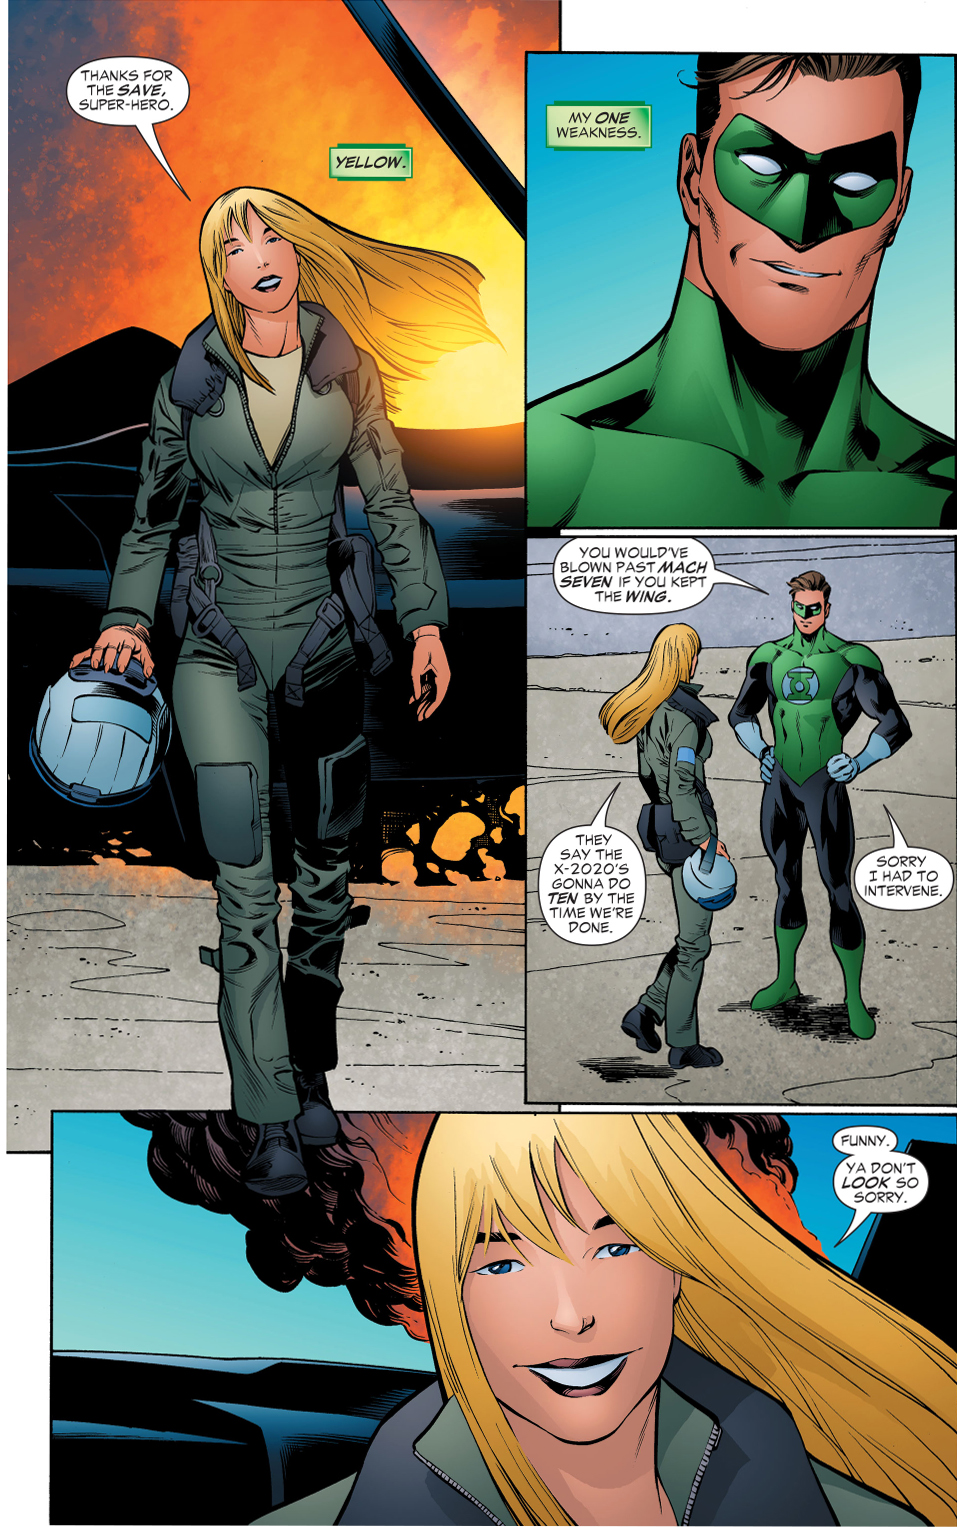 hal jordan's first meeting with cowgirl